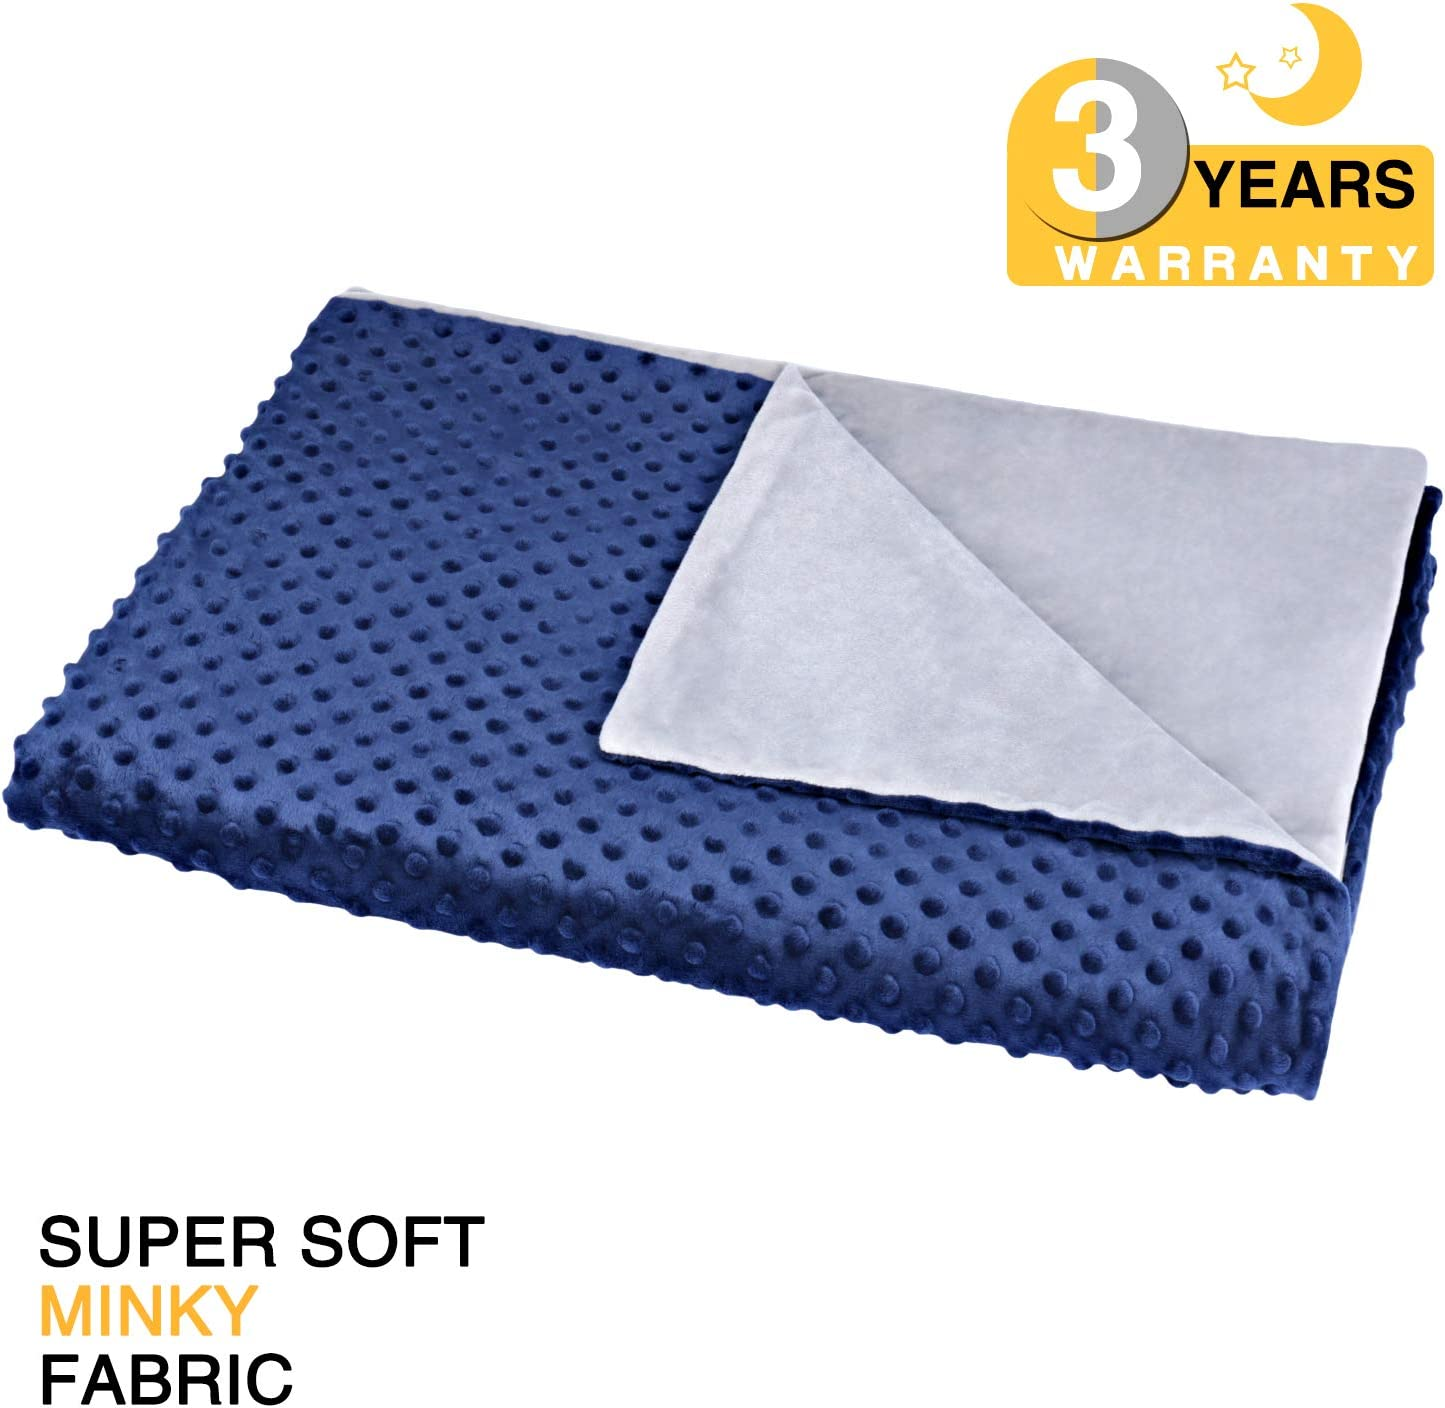 """bedextra Removable Duvet Cover for Weighted Blanket Super Soft Minky Fabric 